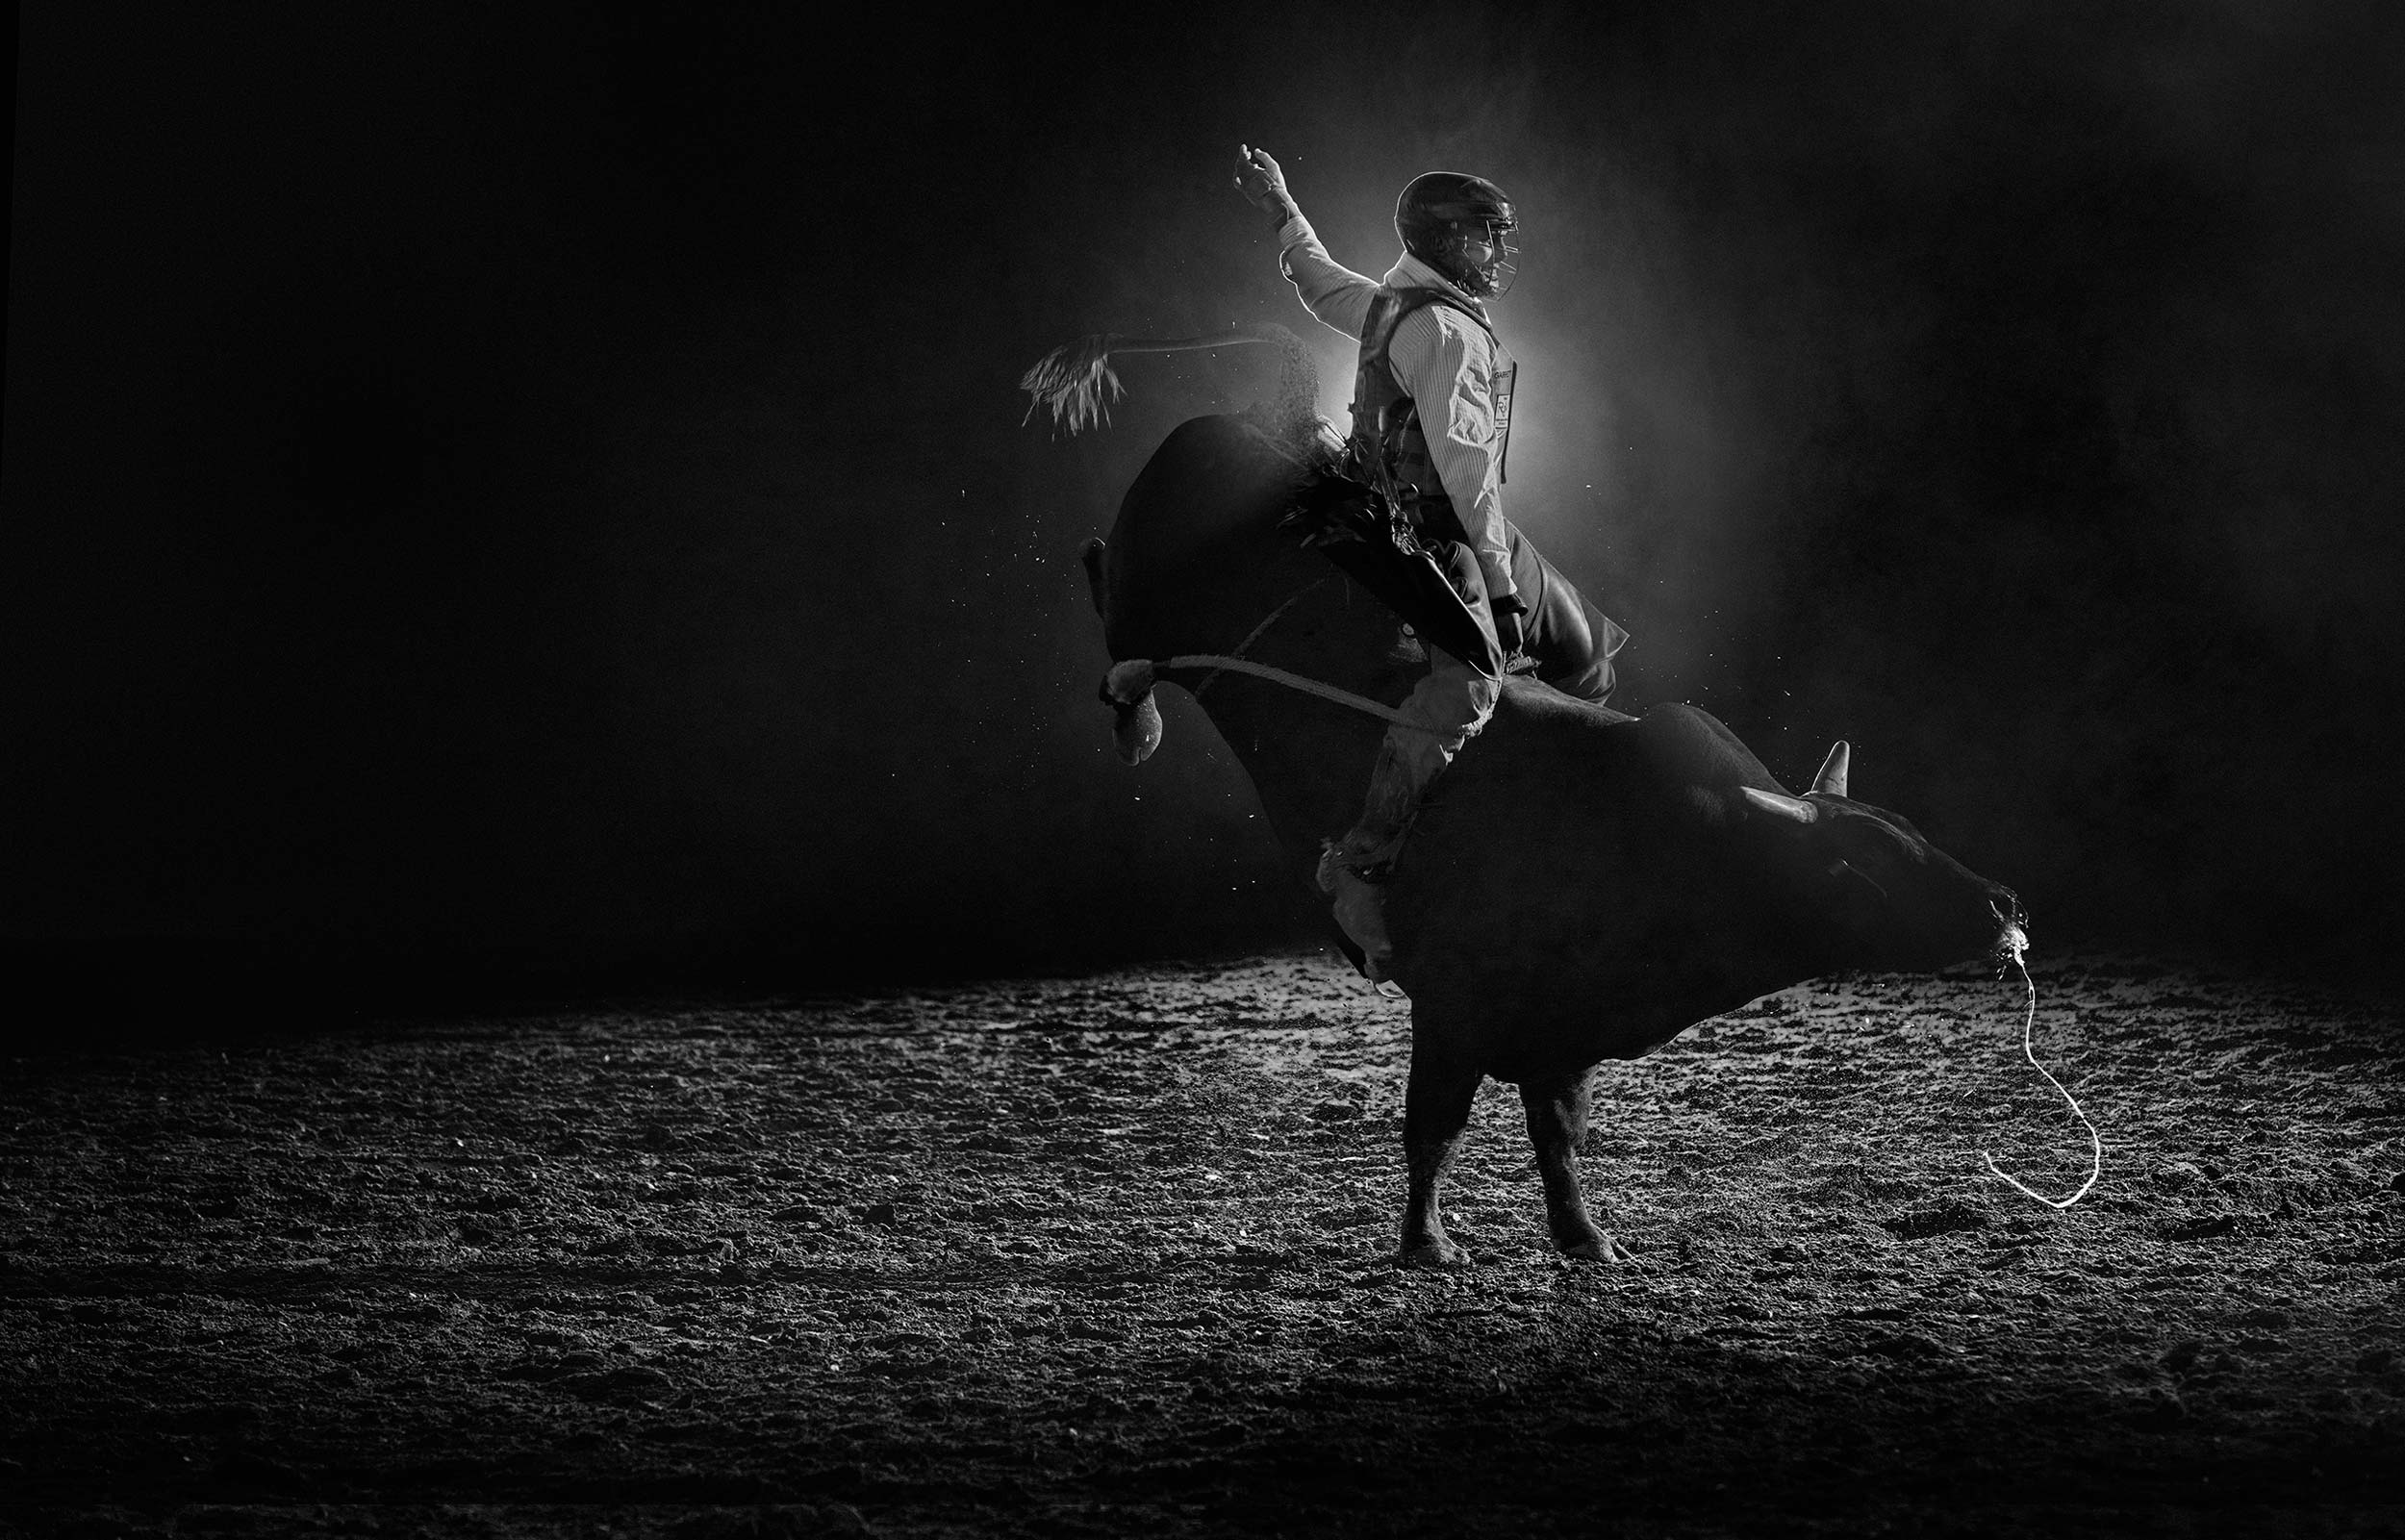 009_RODEO_11013a